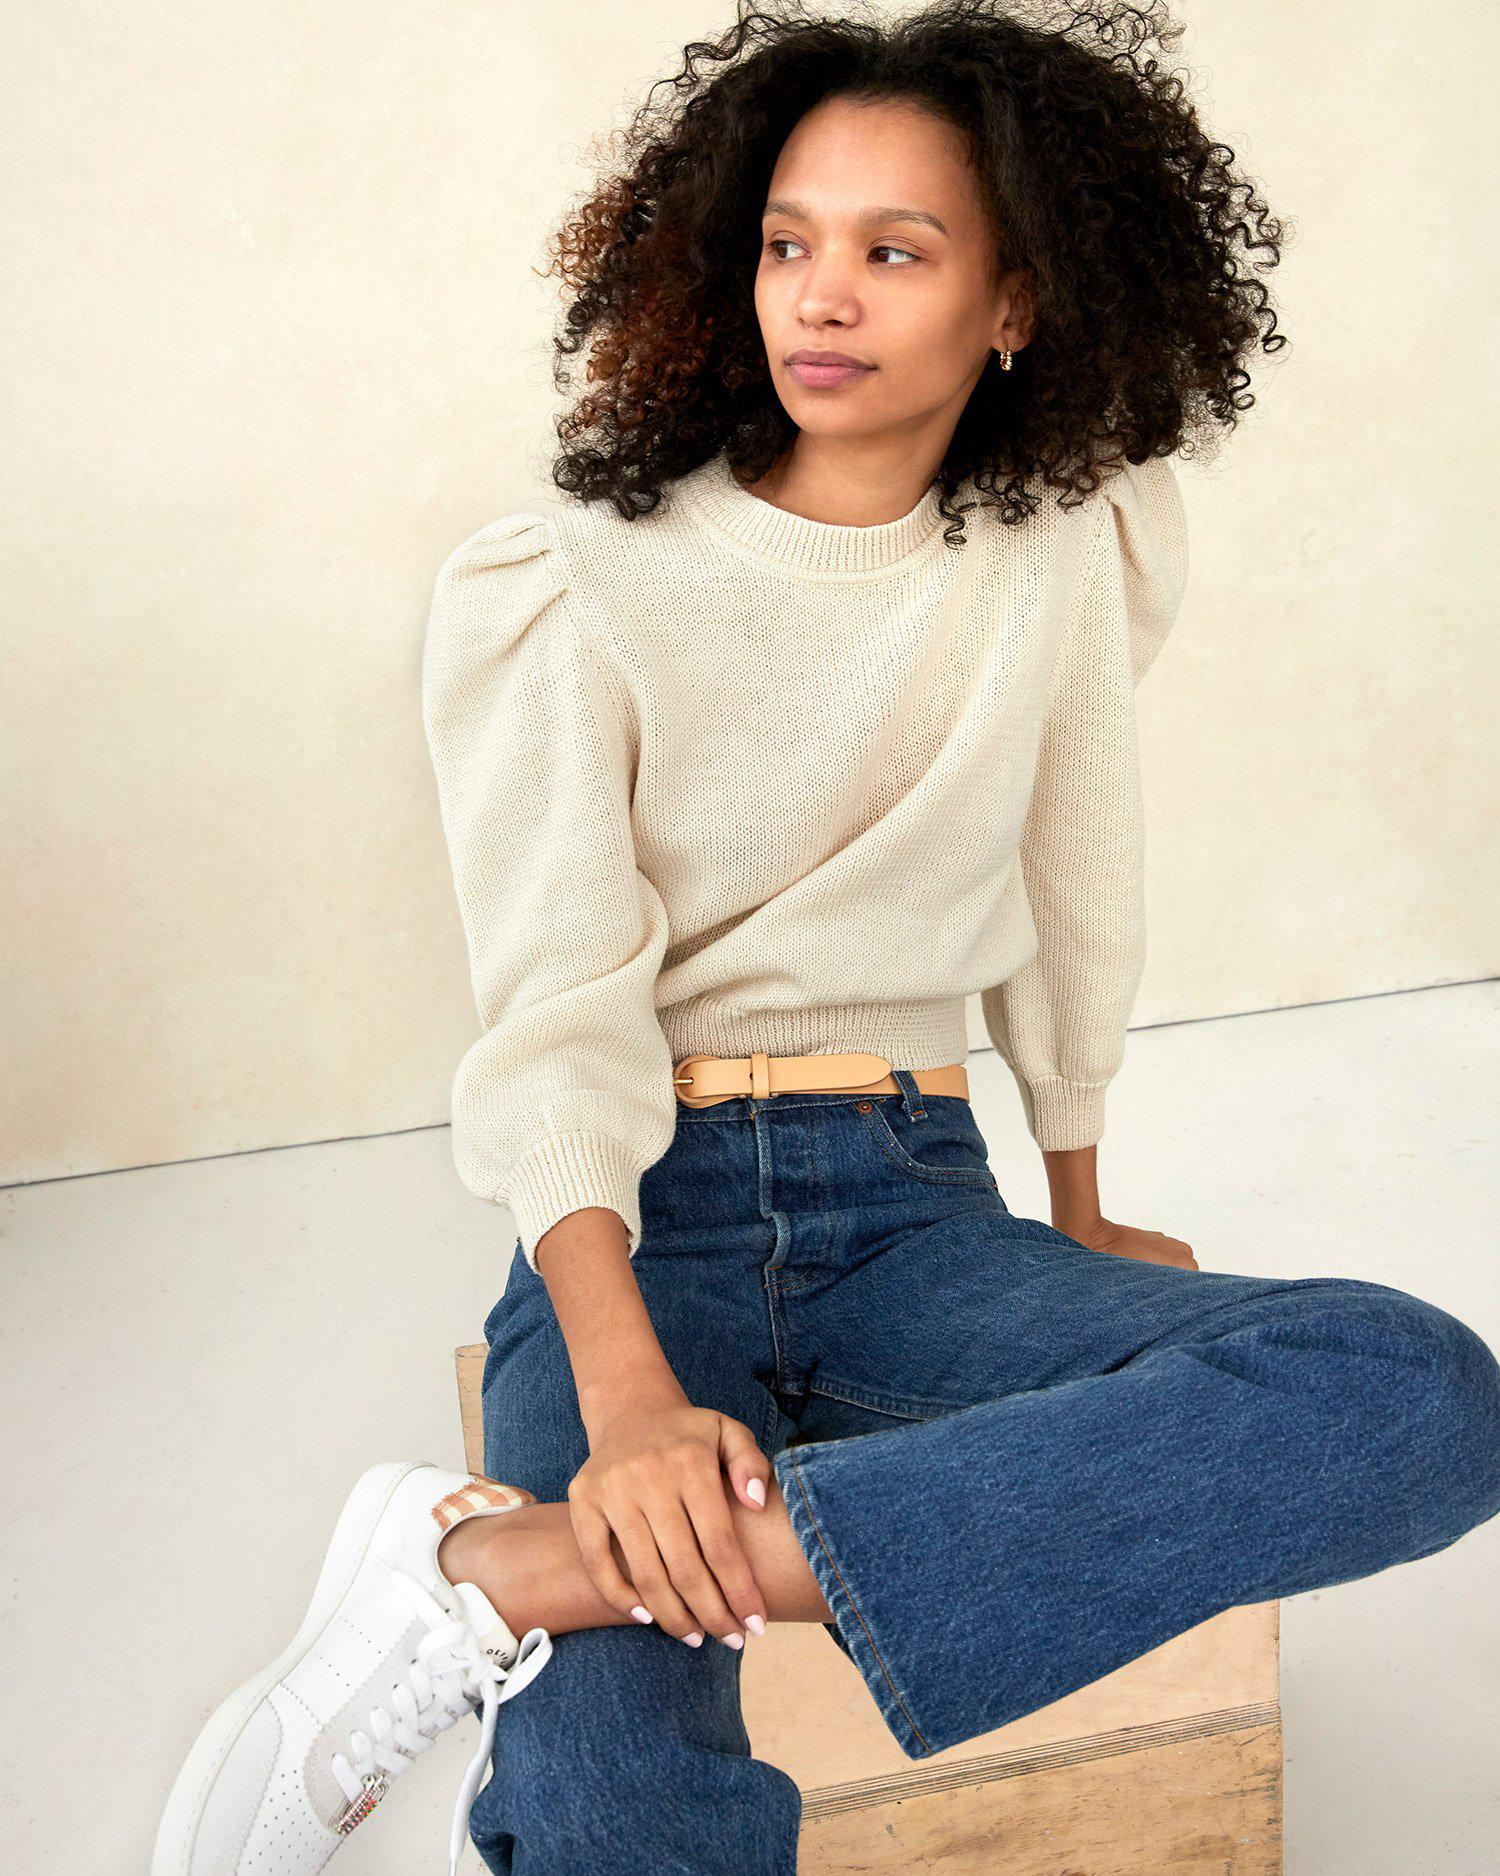 Knits for Good Cream Sweater 4